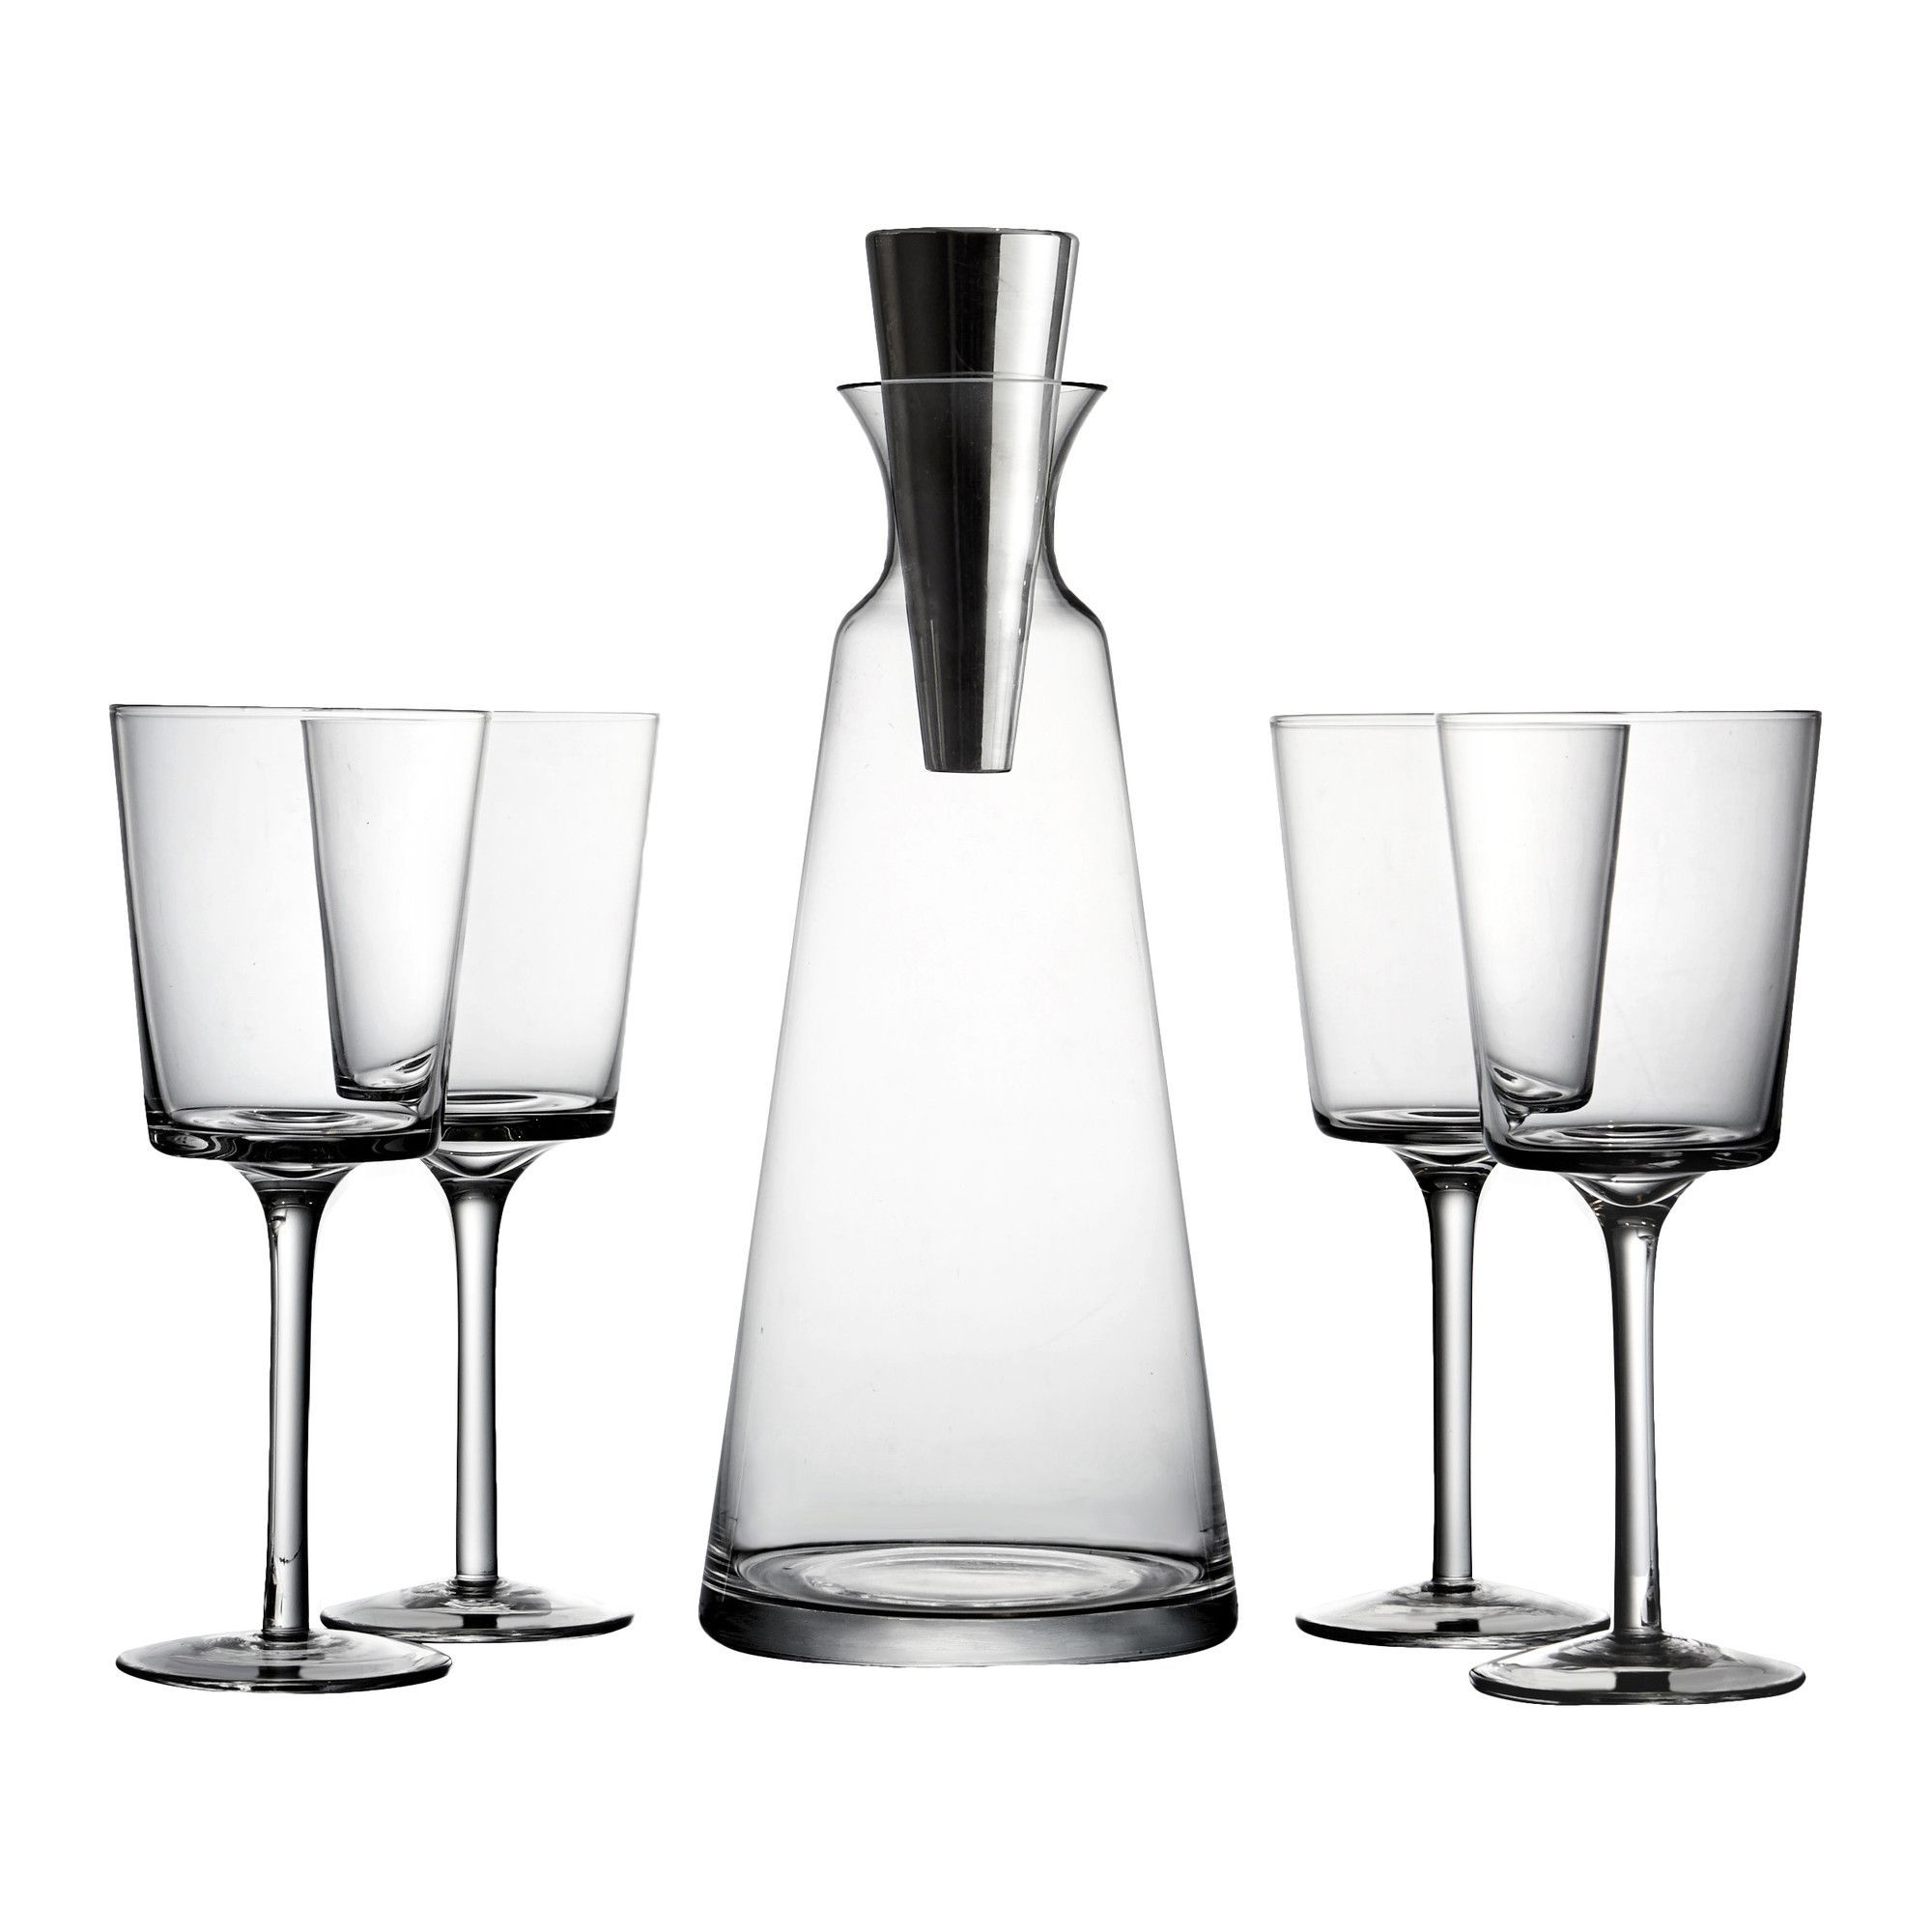 Lincoln Pyramid 5 Piece Wine and Decanter Set